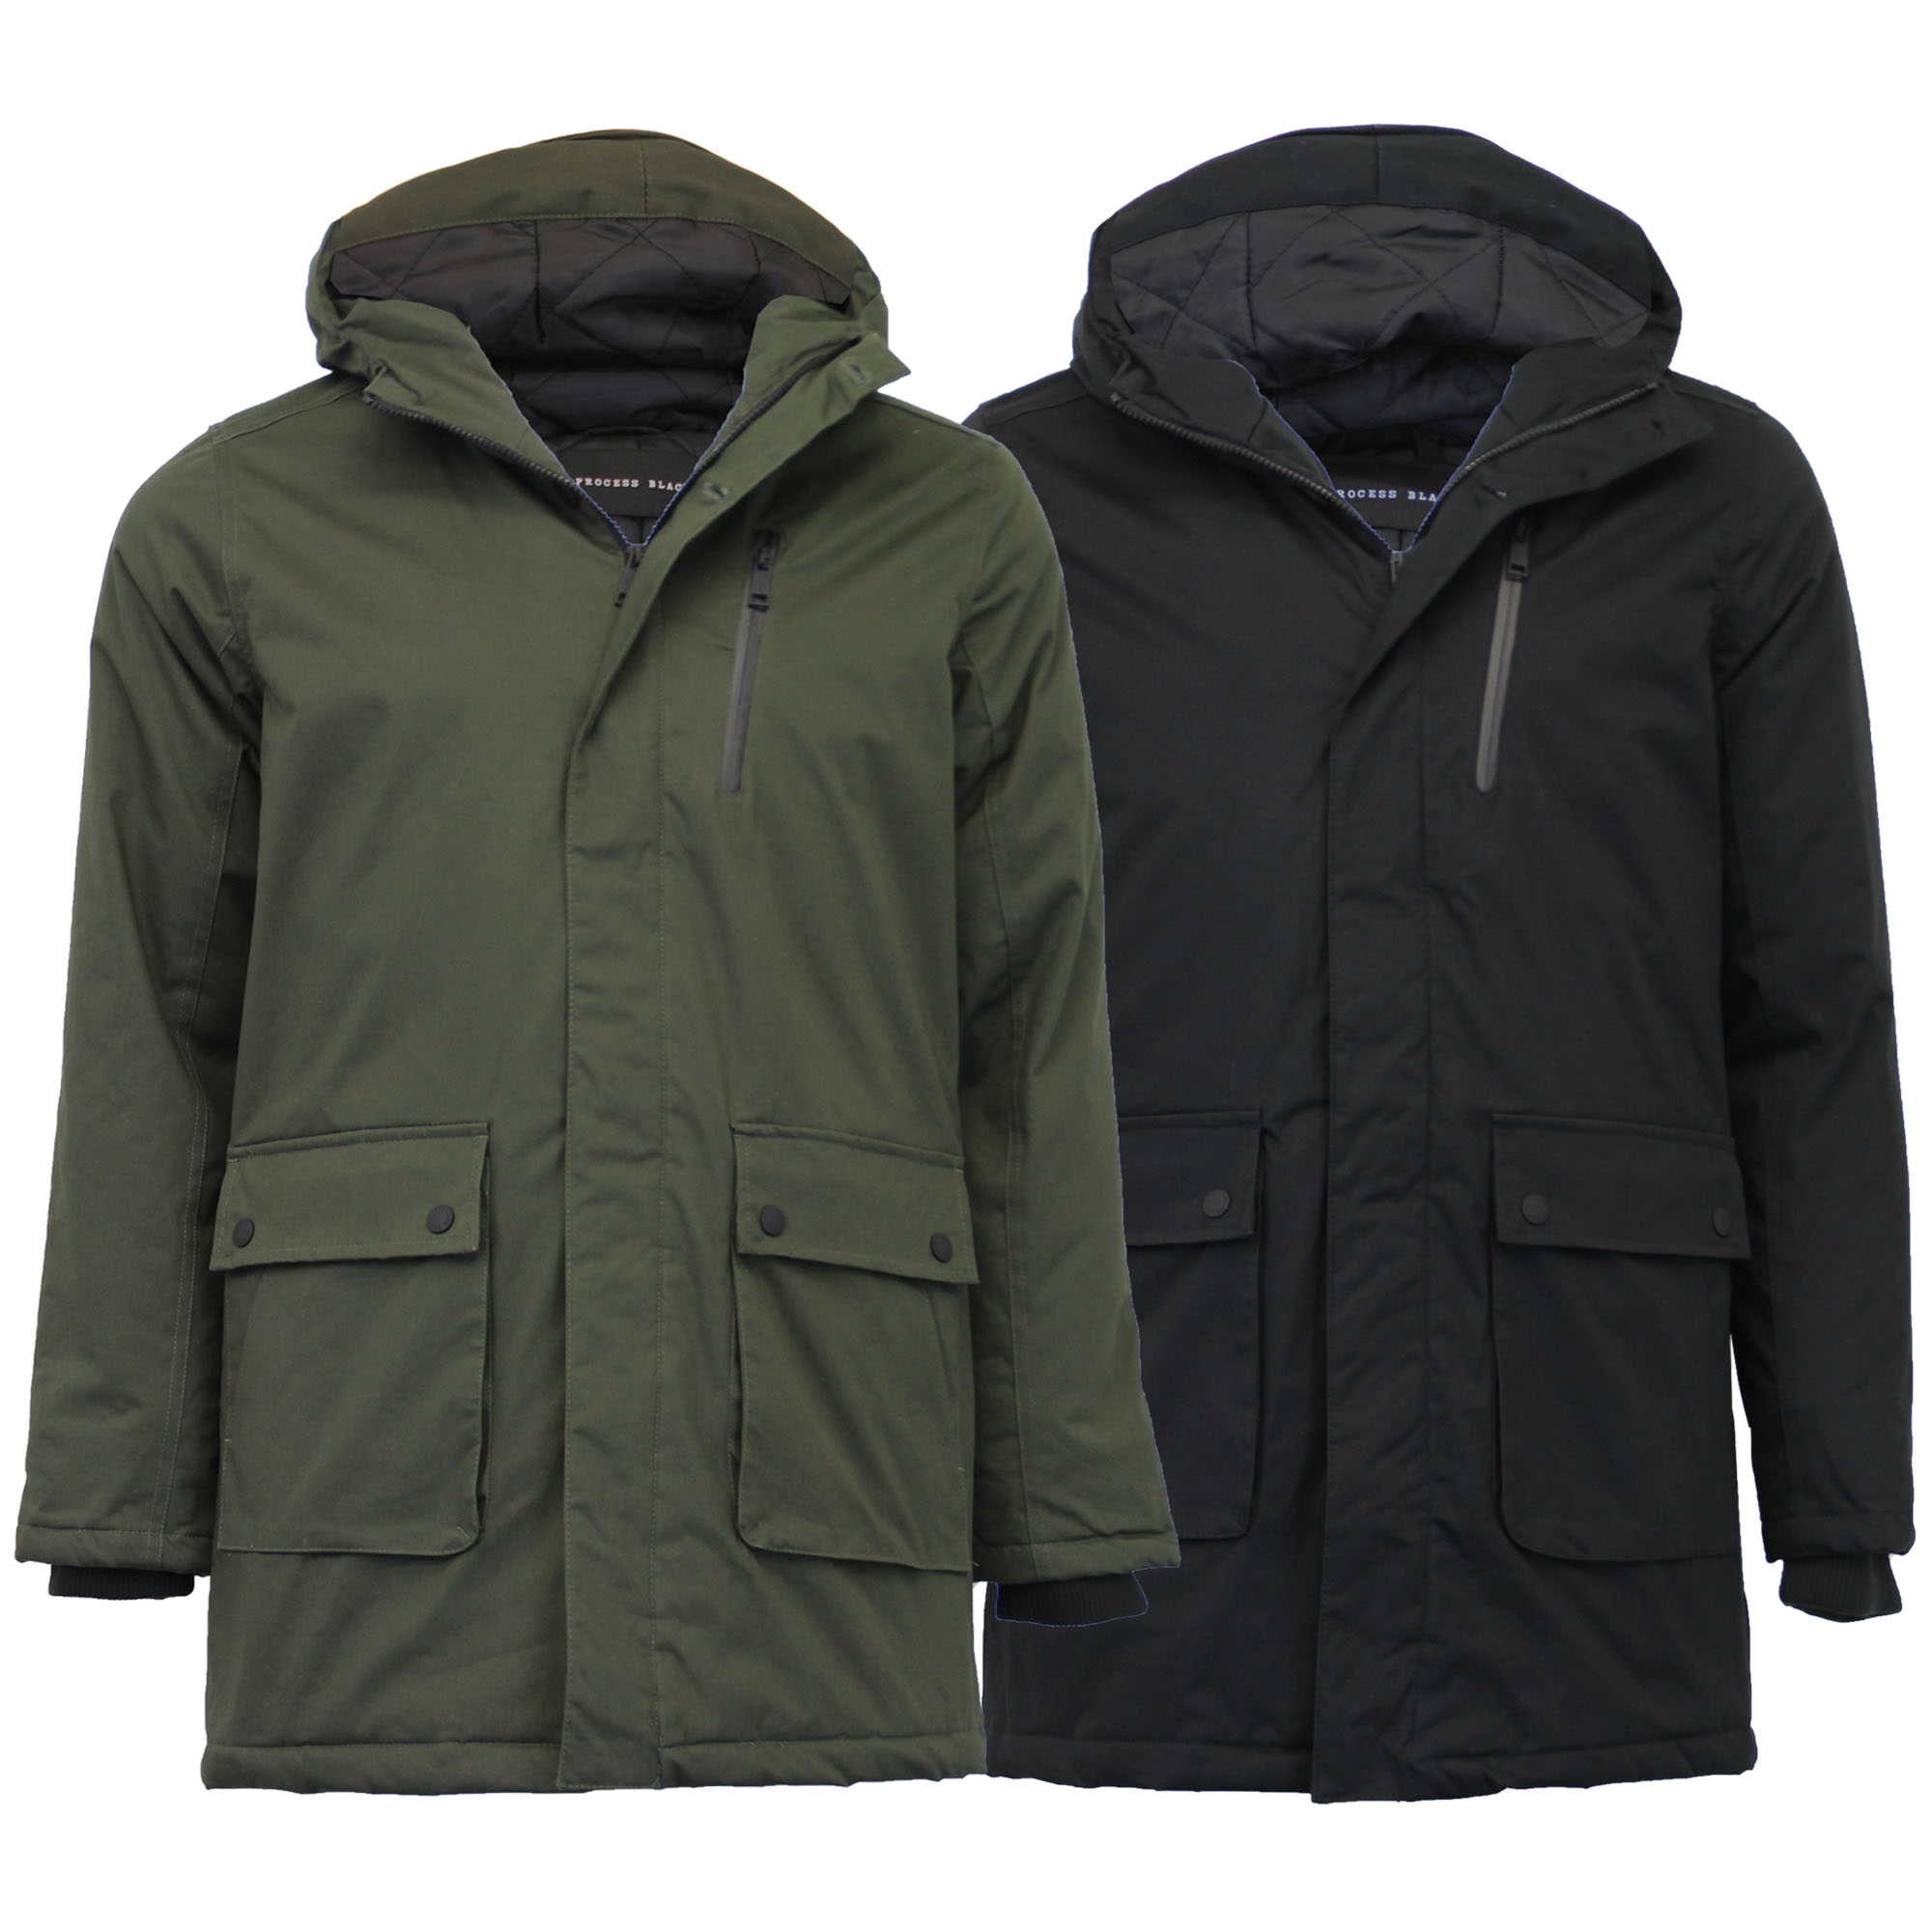 d2199e574e3 Details about Mens Jacket Padded Parka Style Coat Hoodie Quilted Lined  Cotton Designer Winter